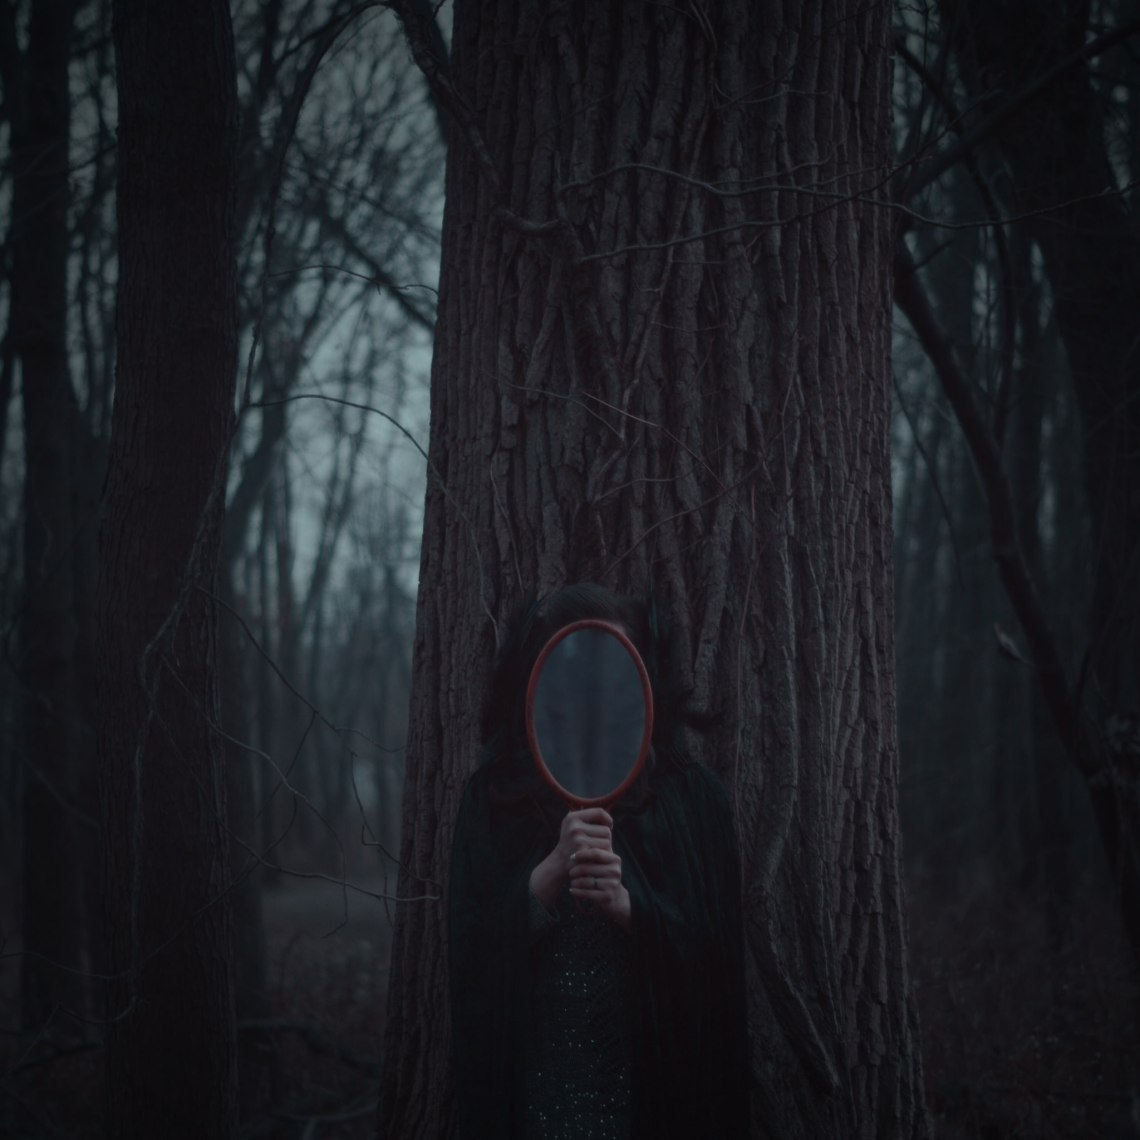 creepy woman with a mirror